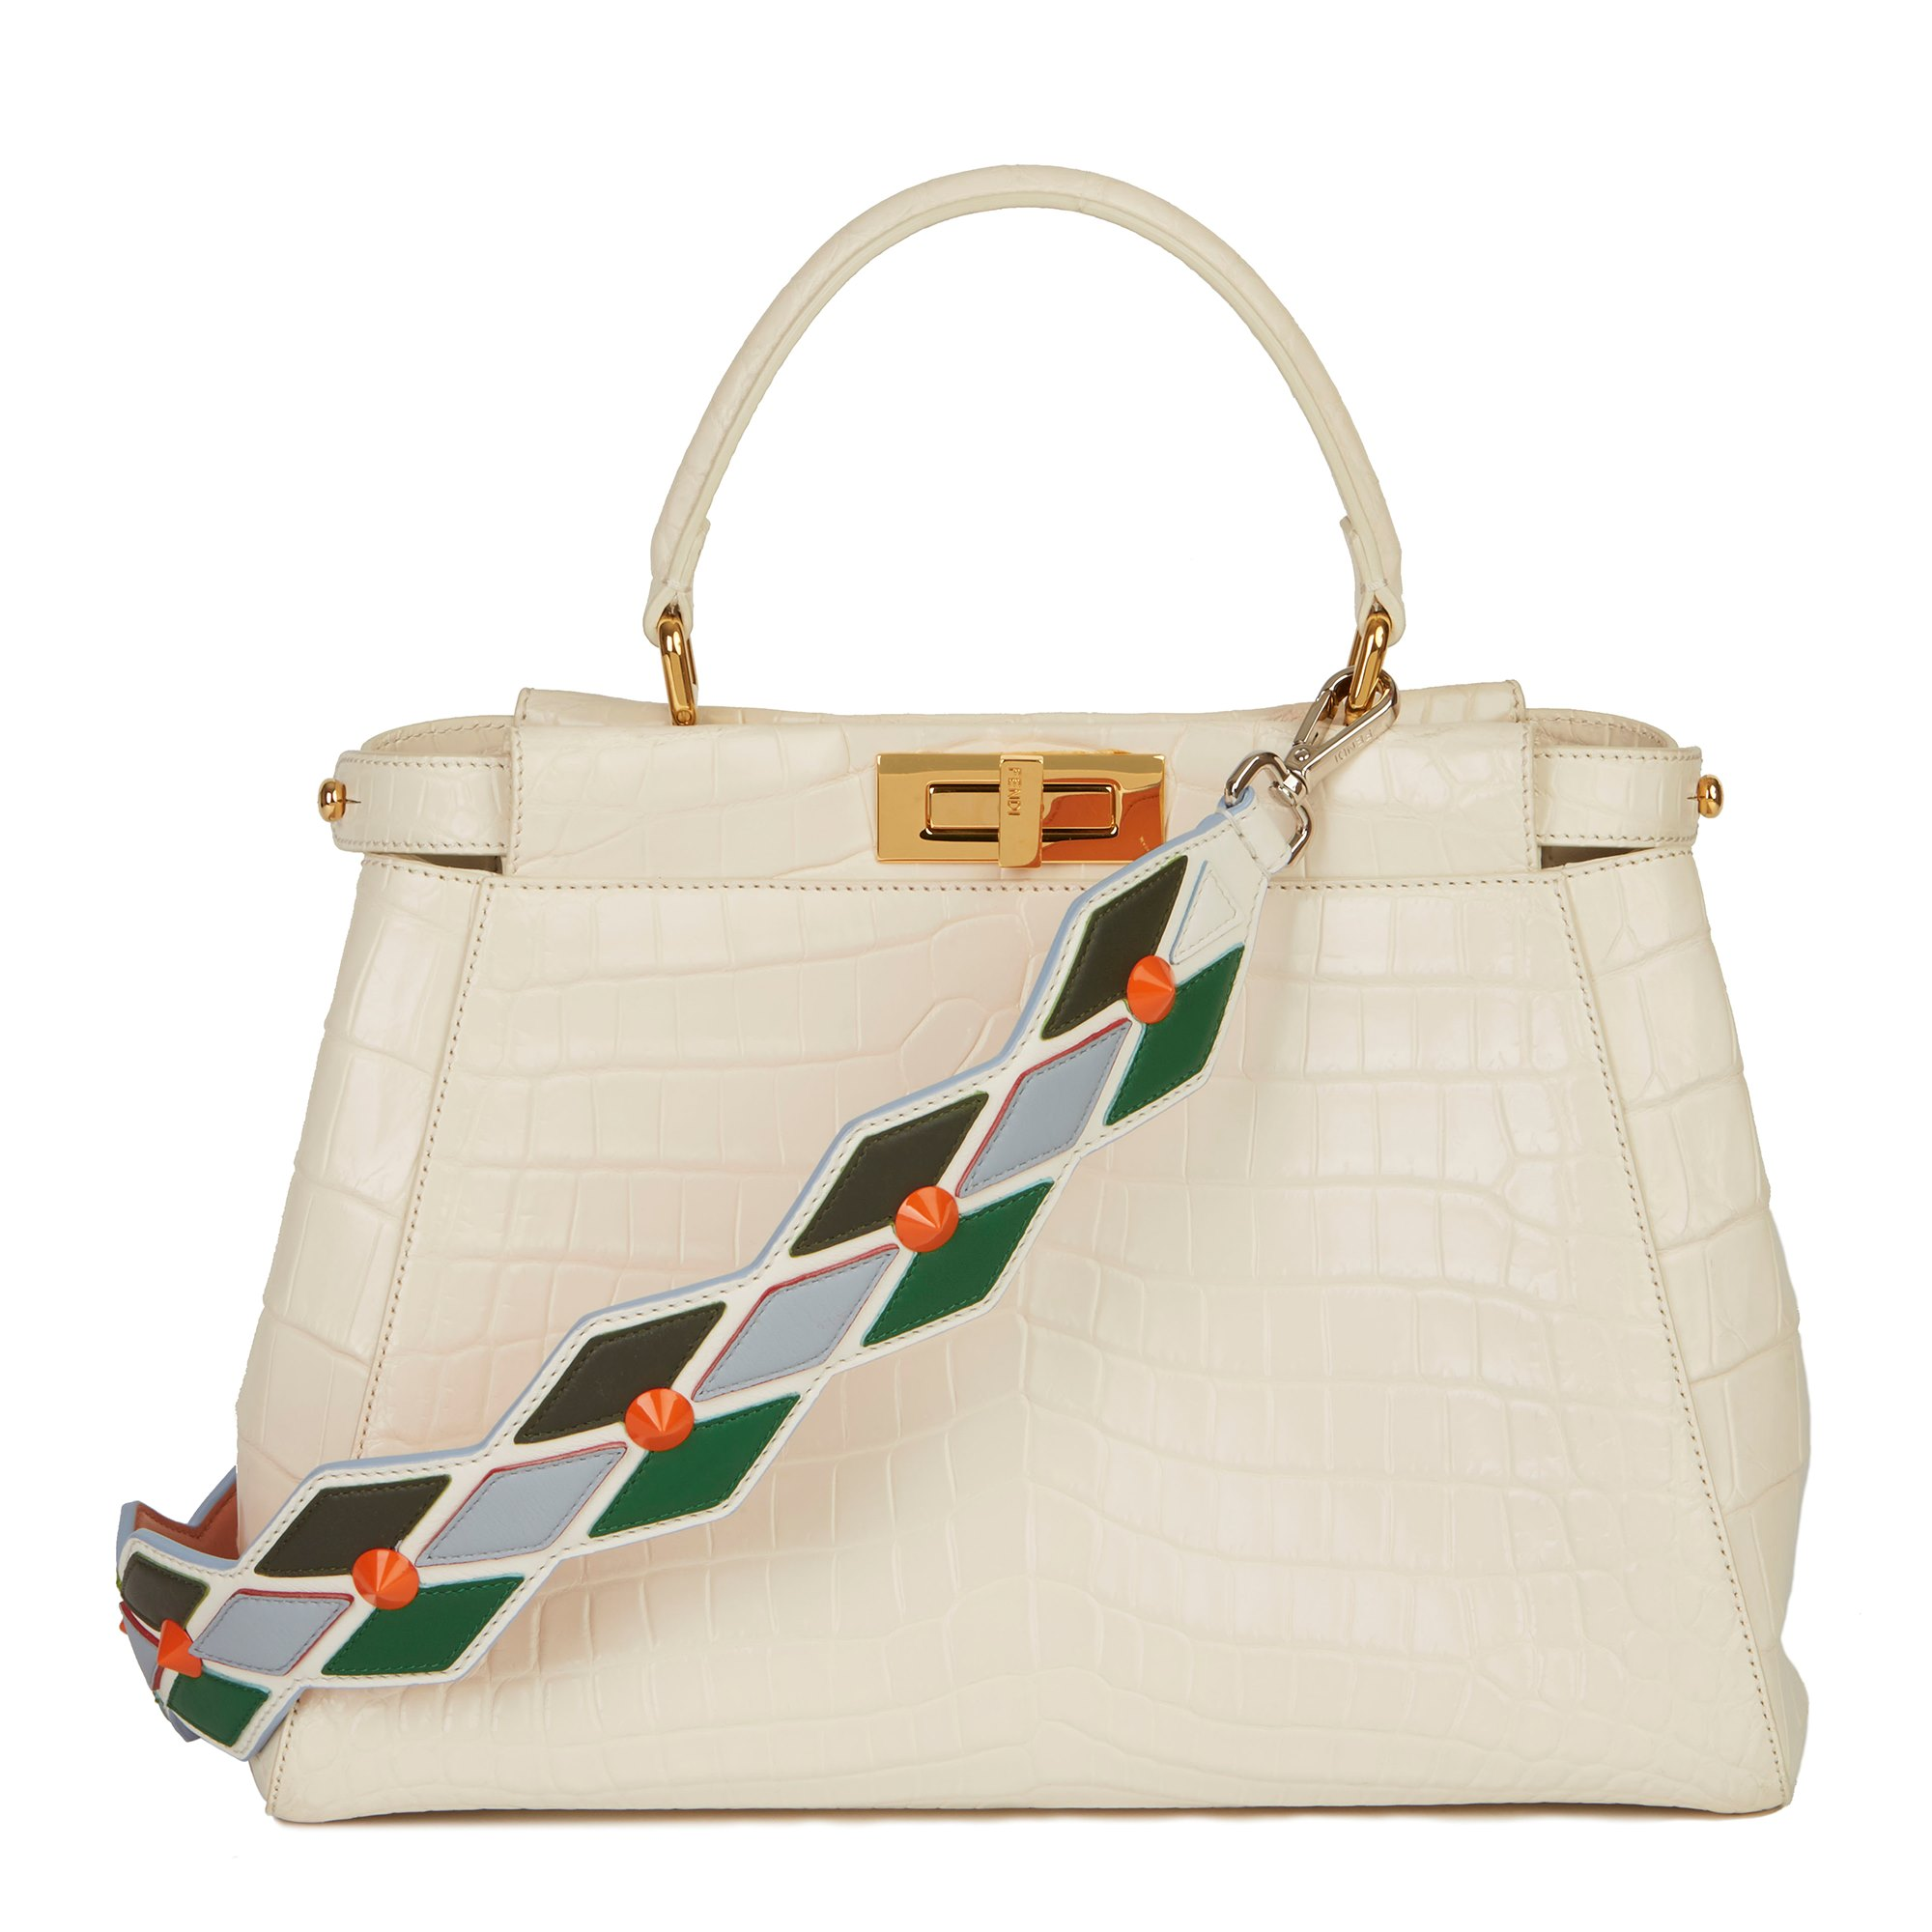 Fendi White Shiny Niloticus Crocodile Leather Regular Peekaboo